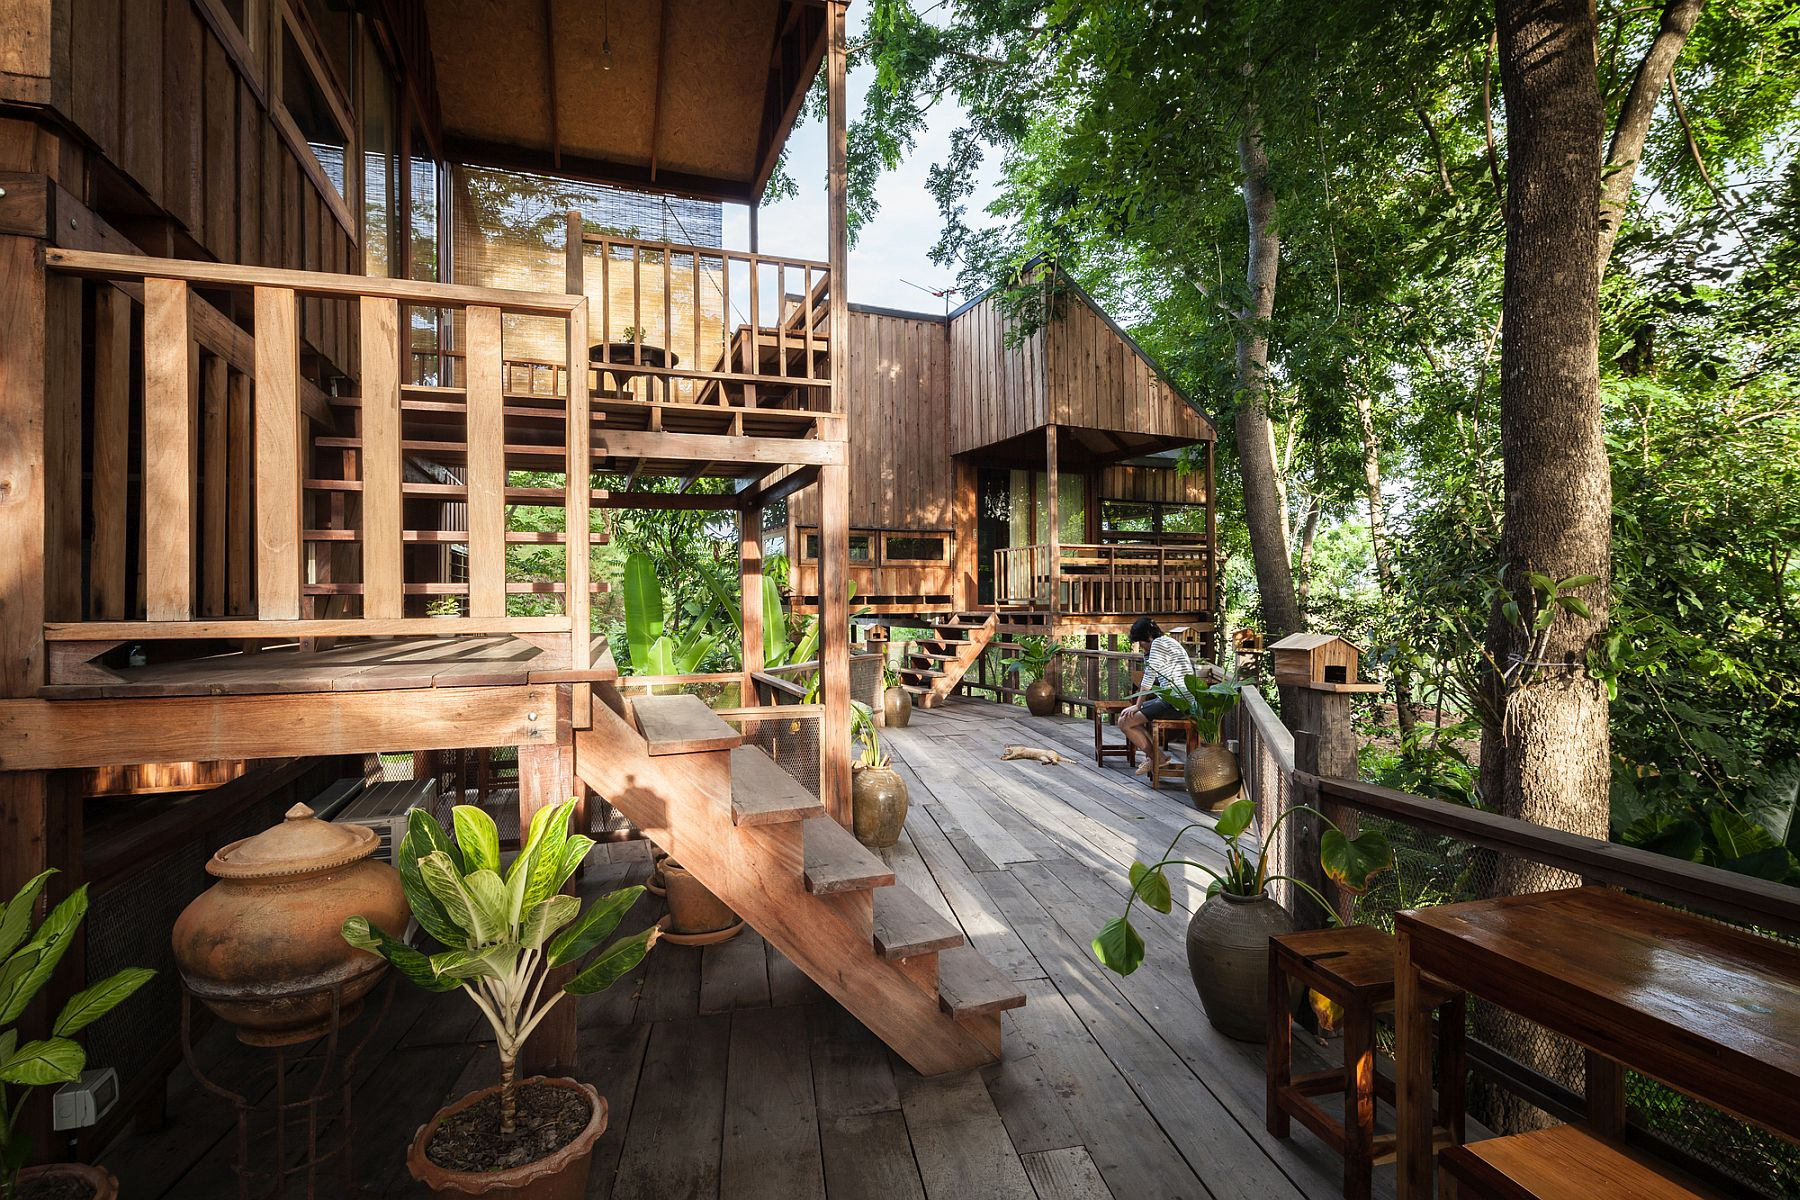 Amazing-Forest-House-brings-greenery-to-your-backyard Rainforest Home Designs on tropical homes, amazon homes, hidden entrance homes, sea homes, waterfall homes, earth homes, beach homes, peru homes, black homes, brazilian typical homes, unique homes, exotic homes, jungle homes, river homes, arctic homes, forest homes, organic homes, natural homes, desert homes,